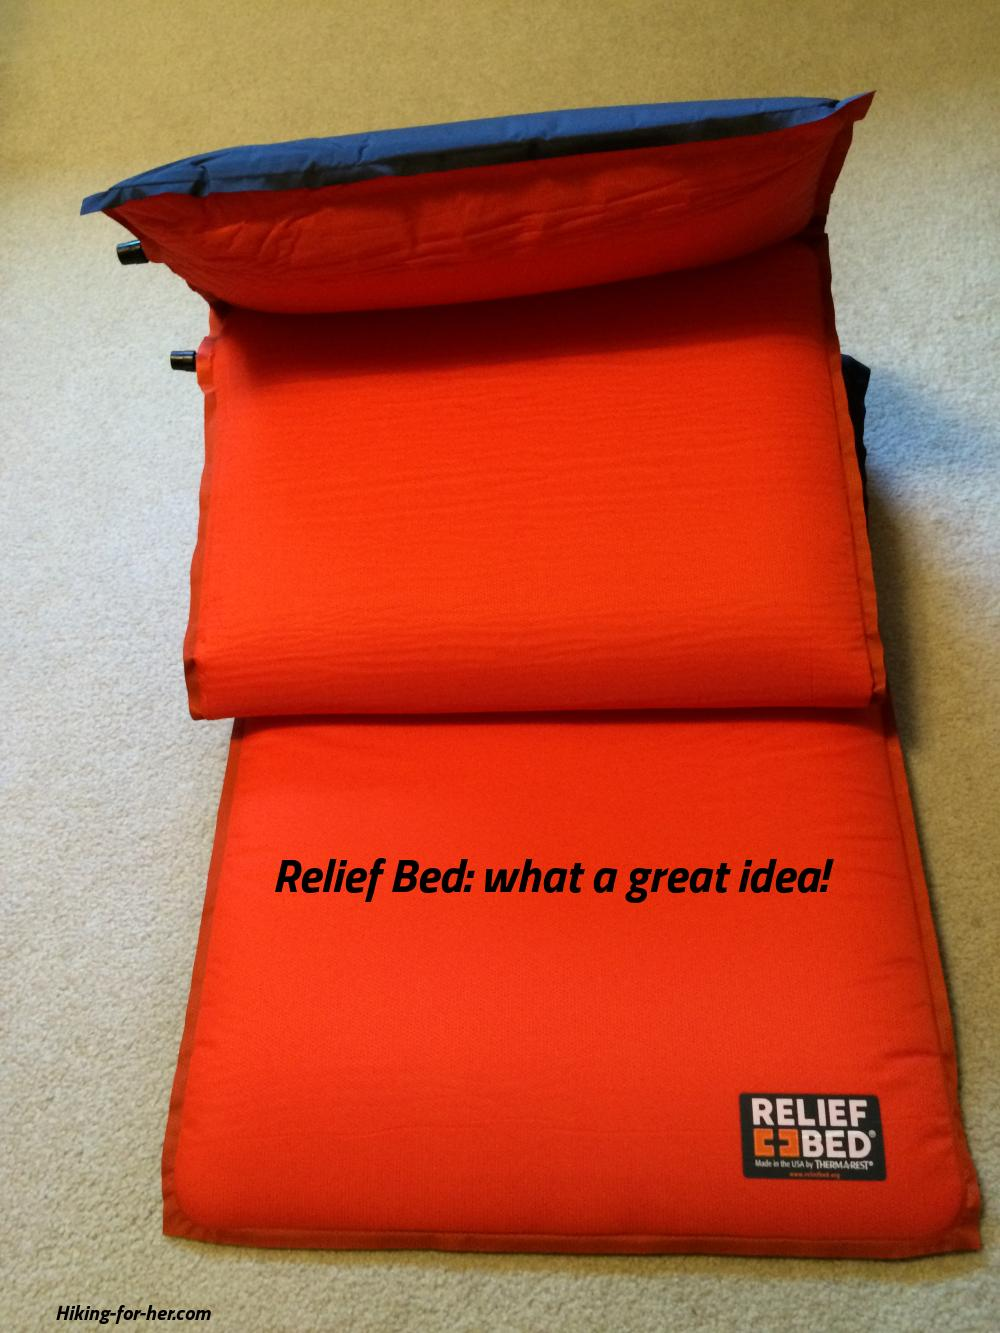 A bright orange Thermarest Relief Bed - what a great idea.